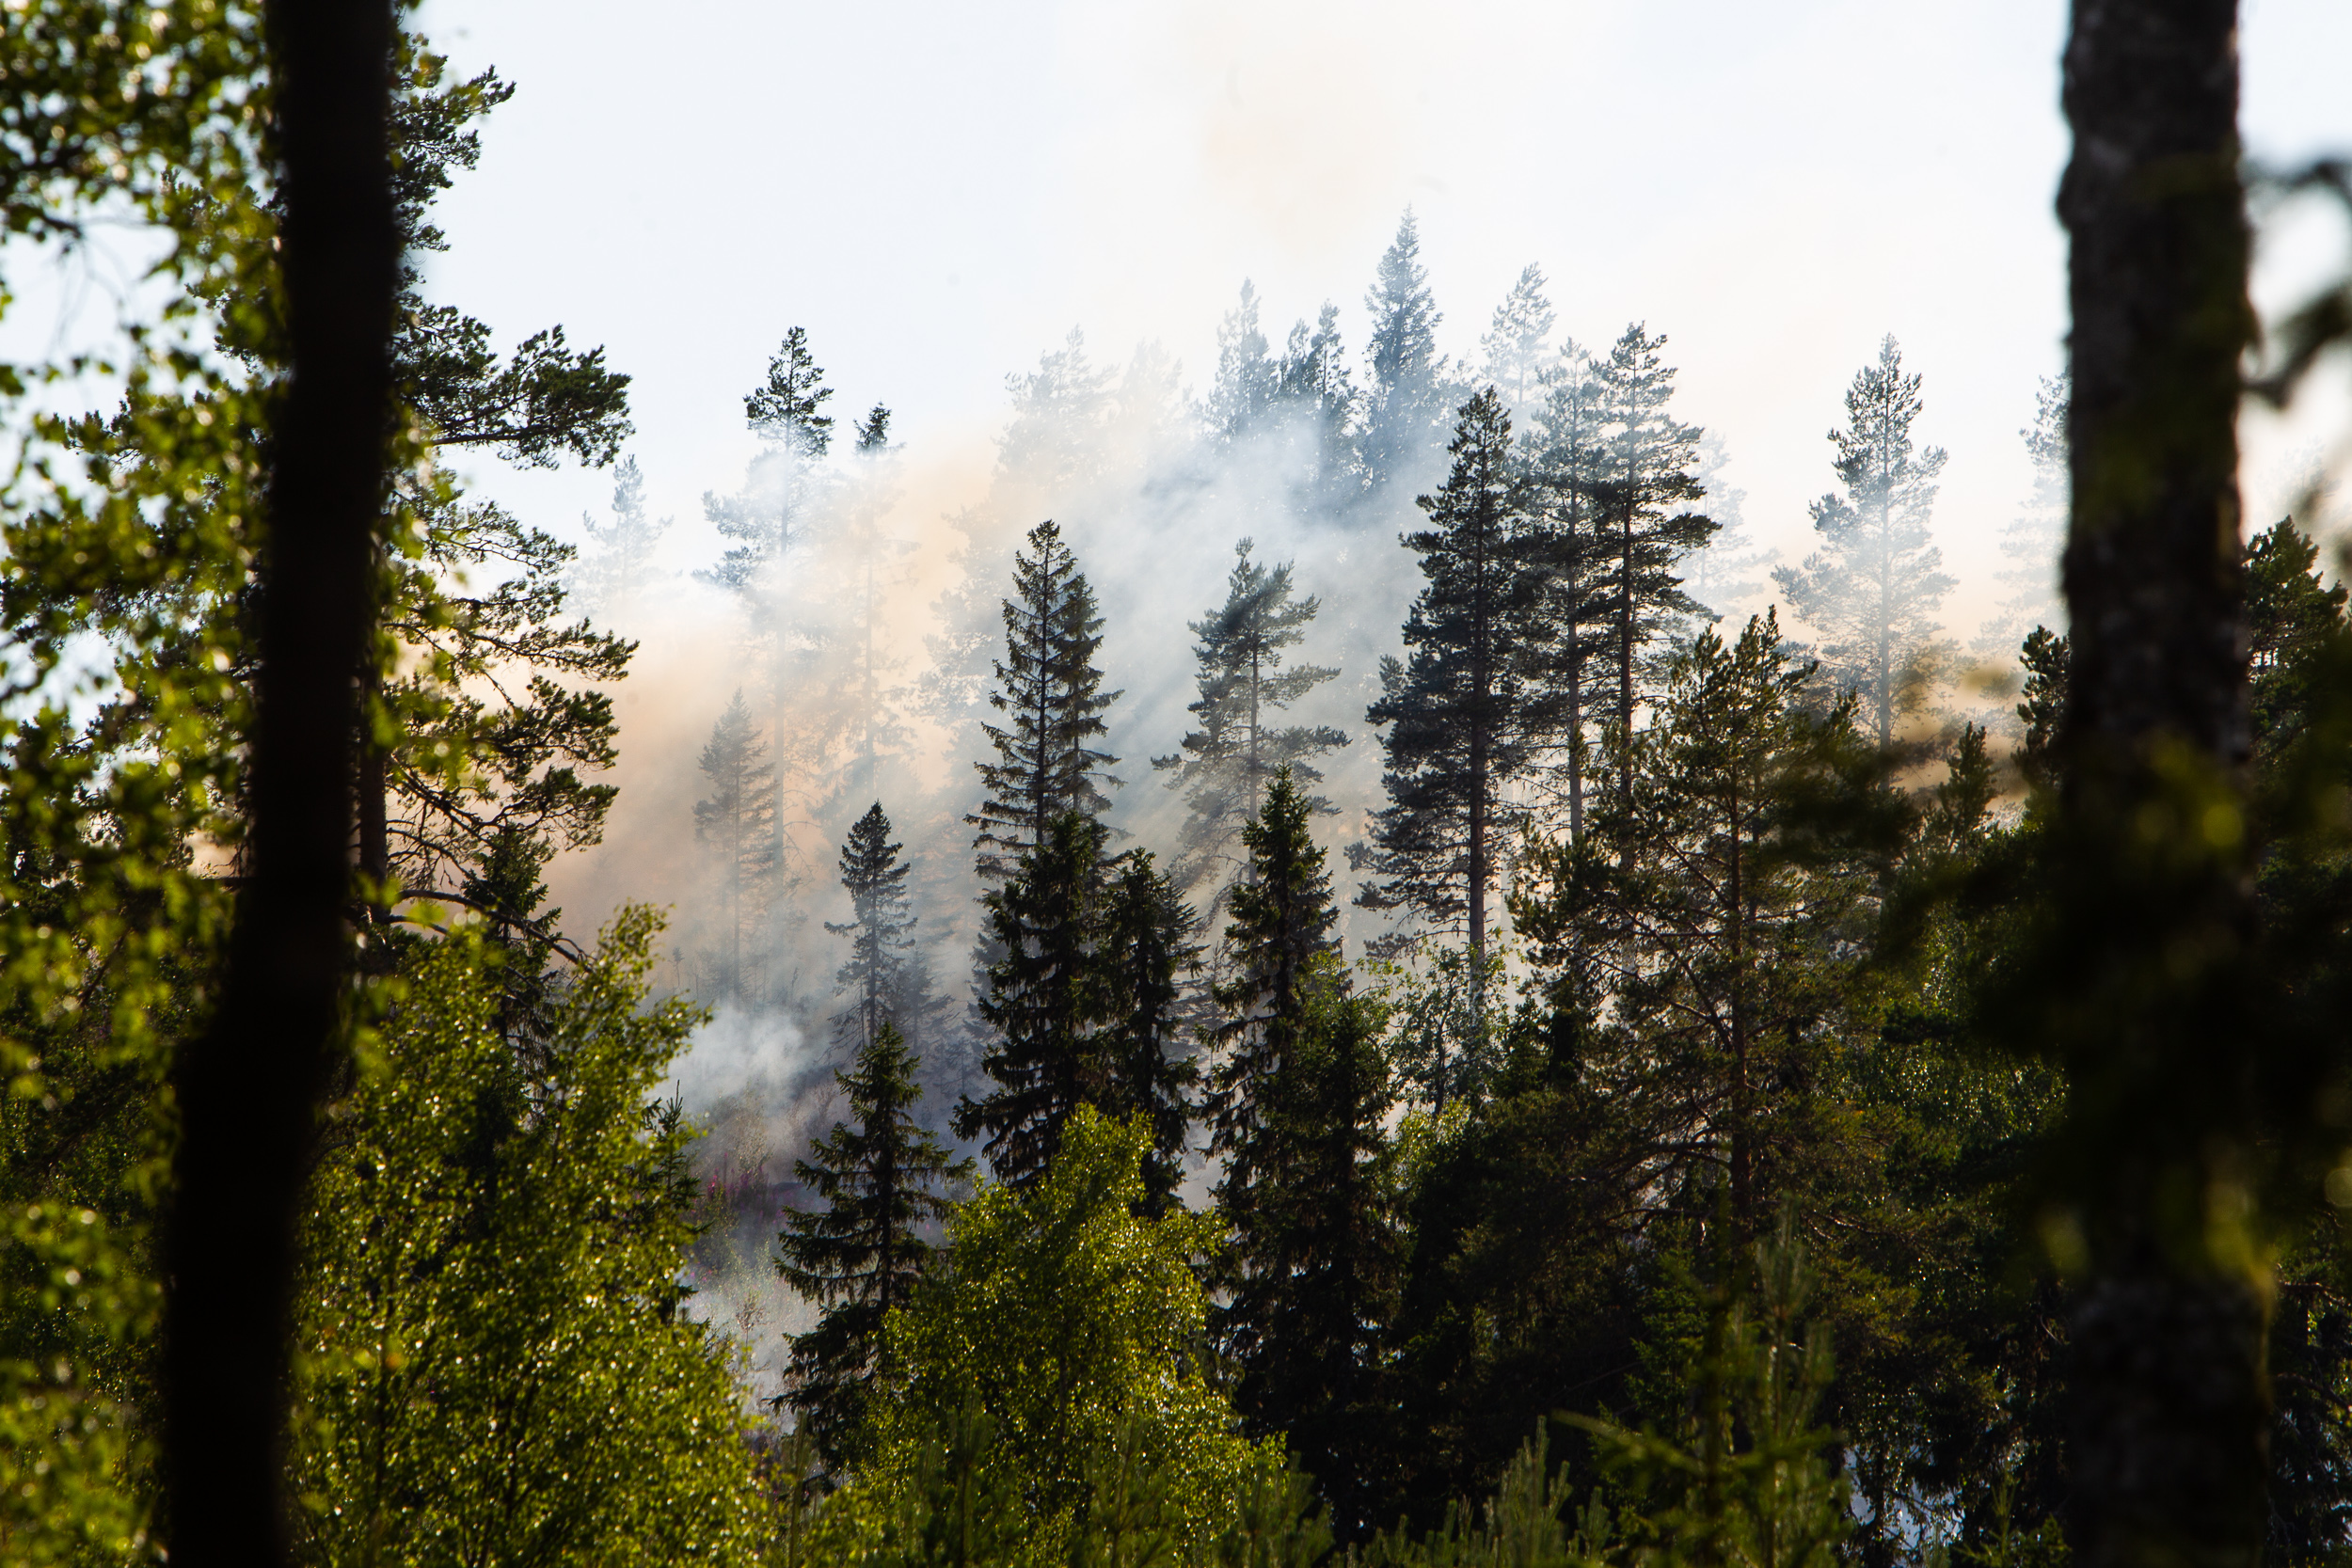 Smoke from a forest fire enveloping pine trees in Hälsingland, Sweden.